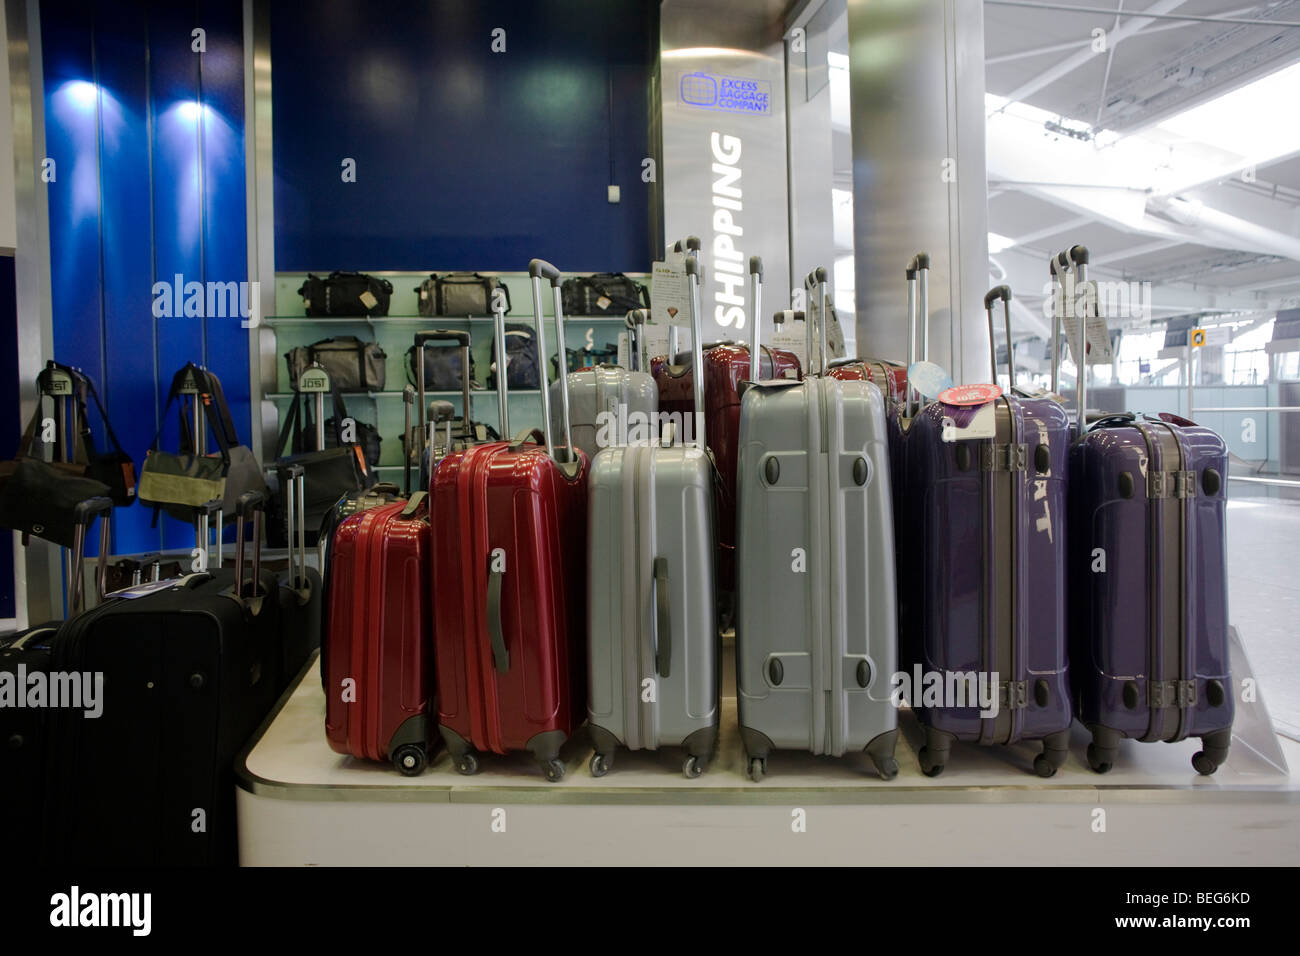 Suitcases on sale at the 'Excess Baggage' shop in departures at Heathrow airport's terminal 5. - Stock Image